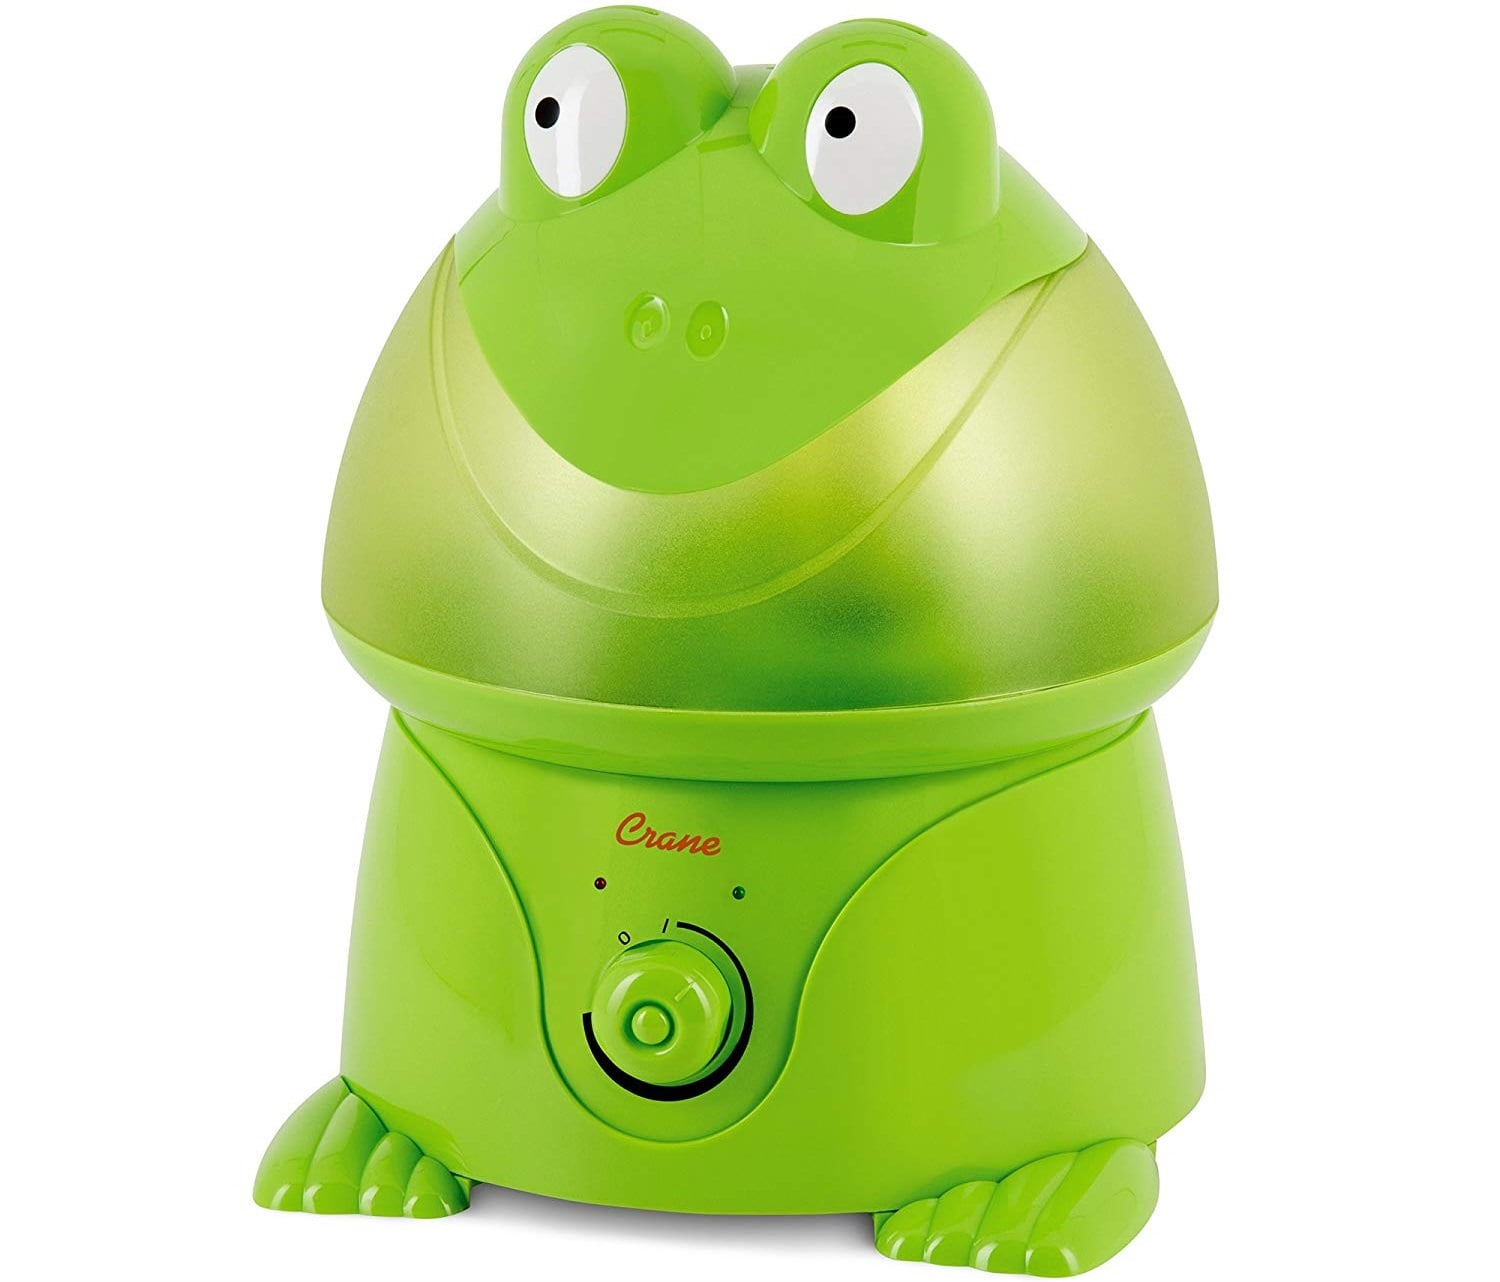 Crane Filter-Free Cool Mist Humidifiers for Kids, Penguin